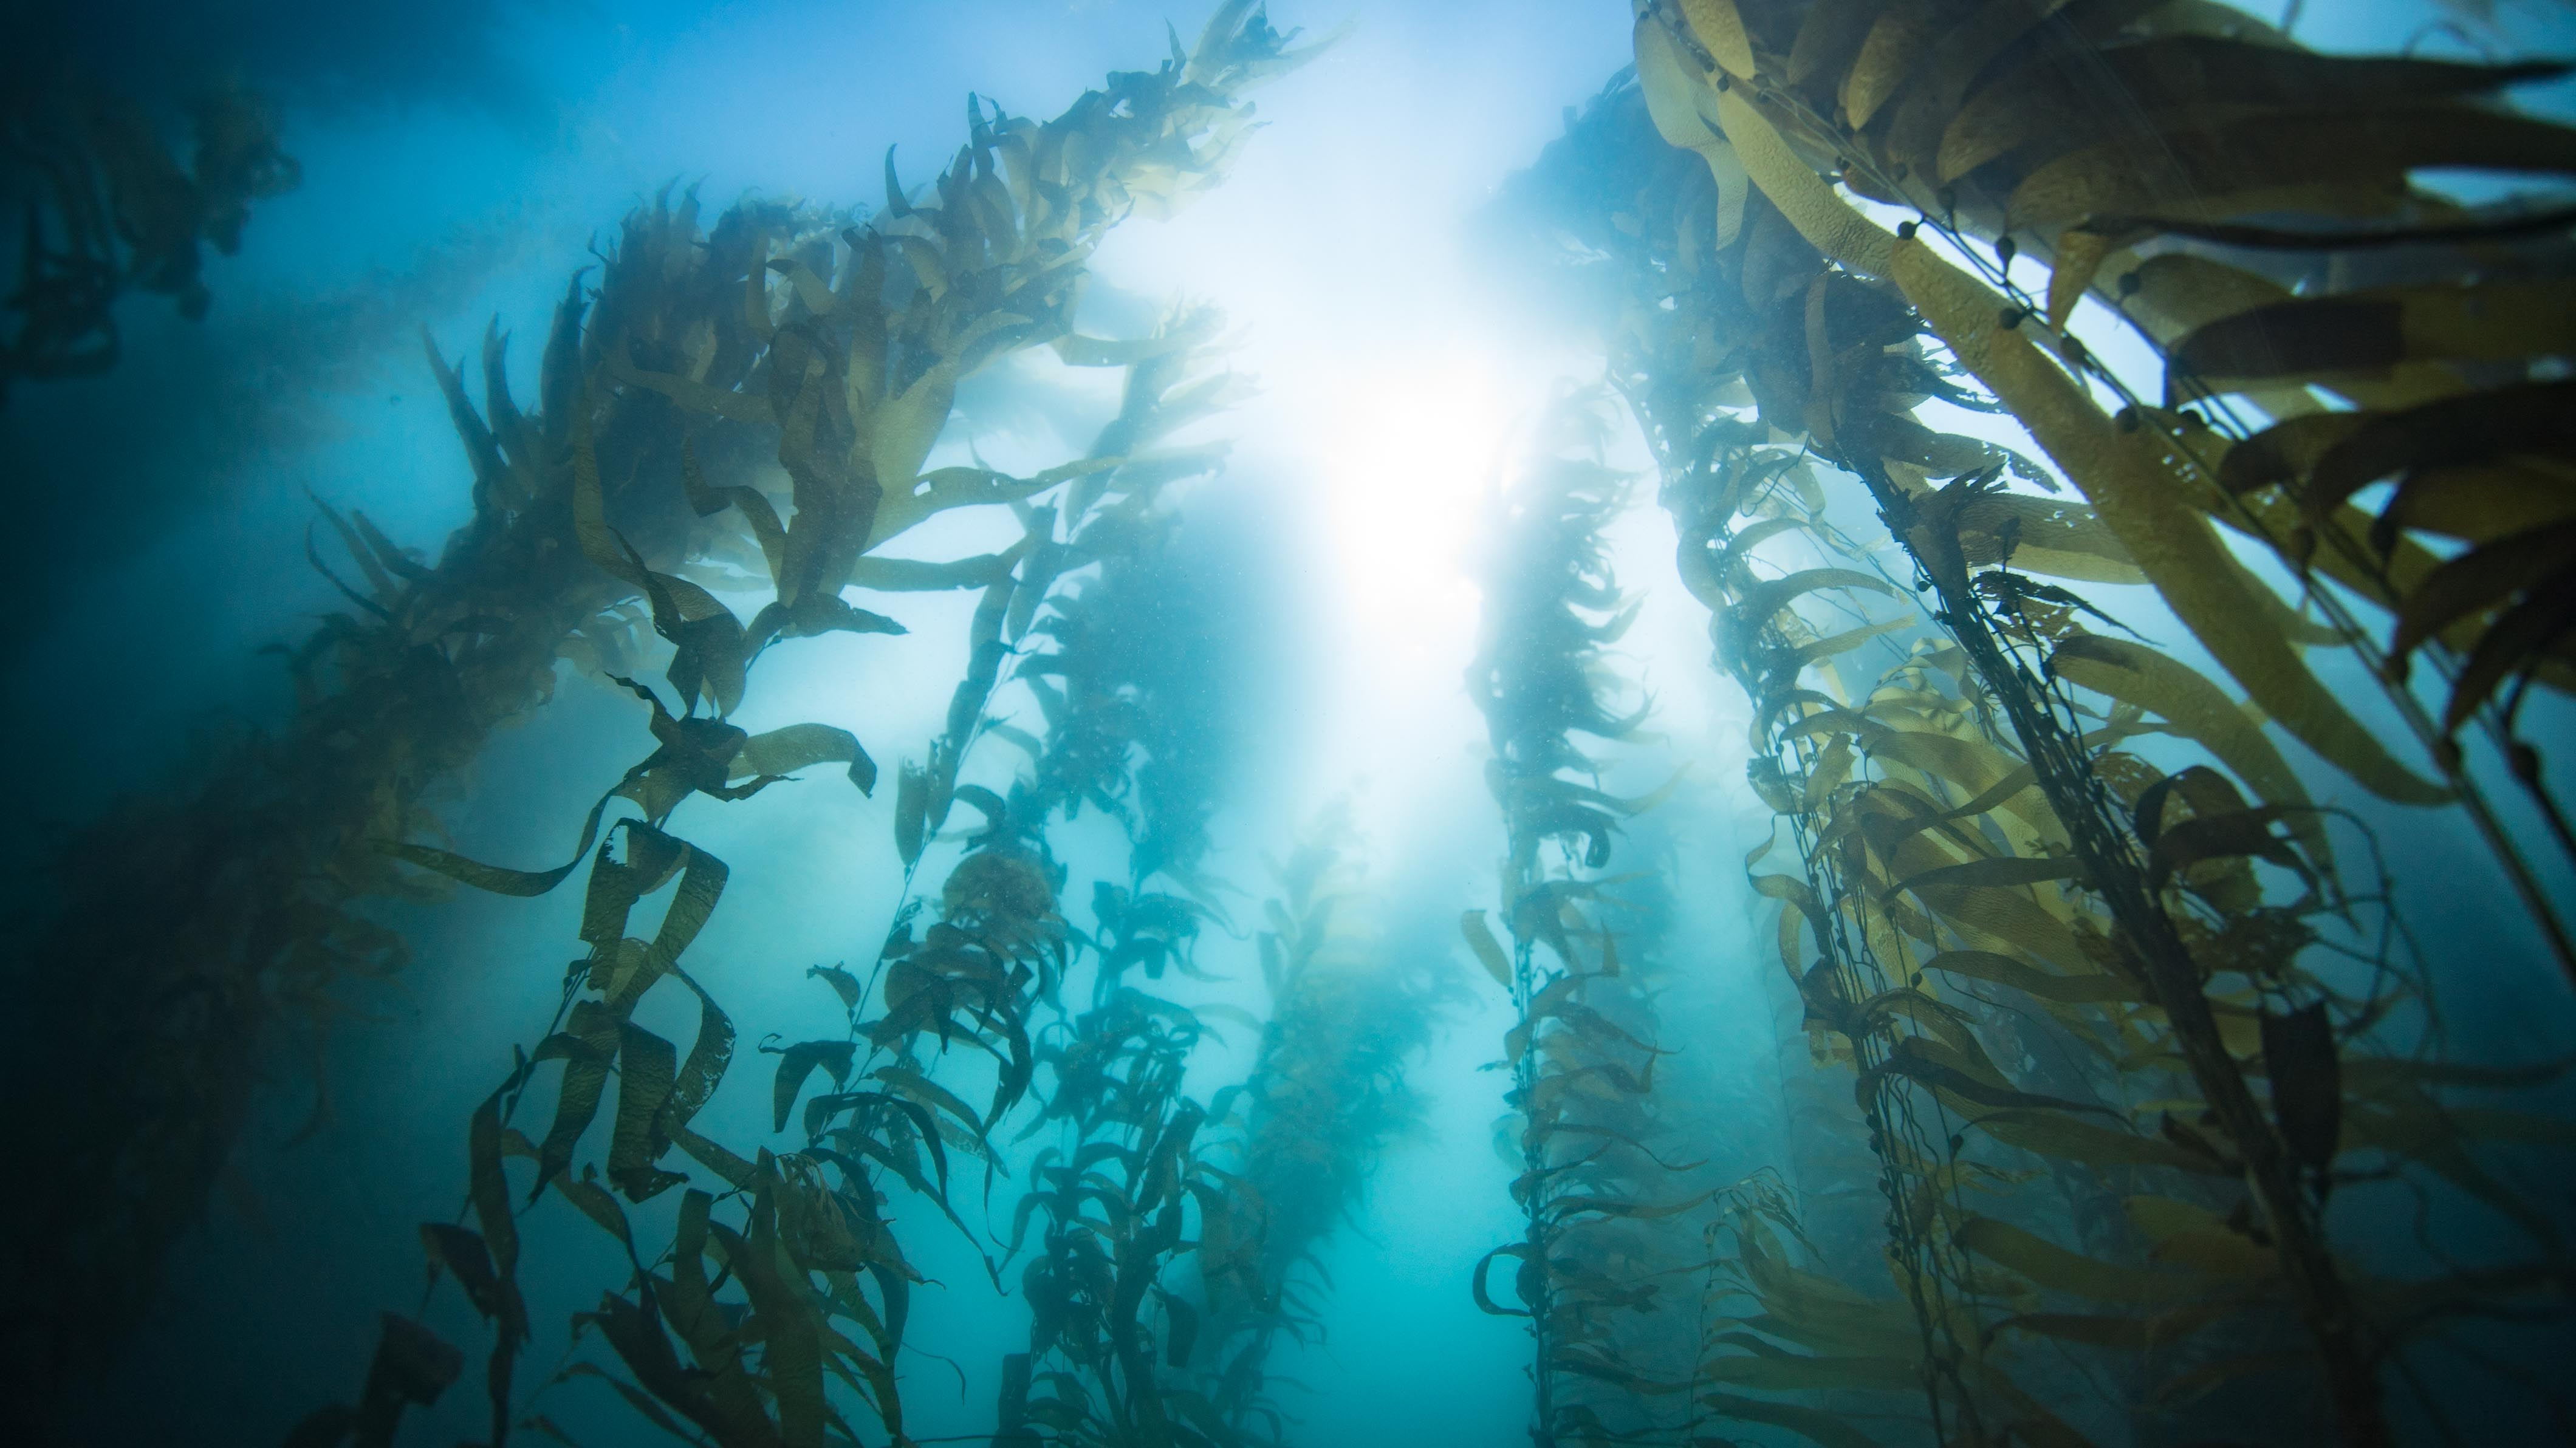 kelp forest from below